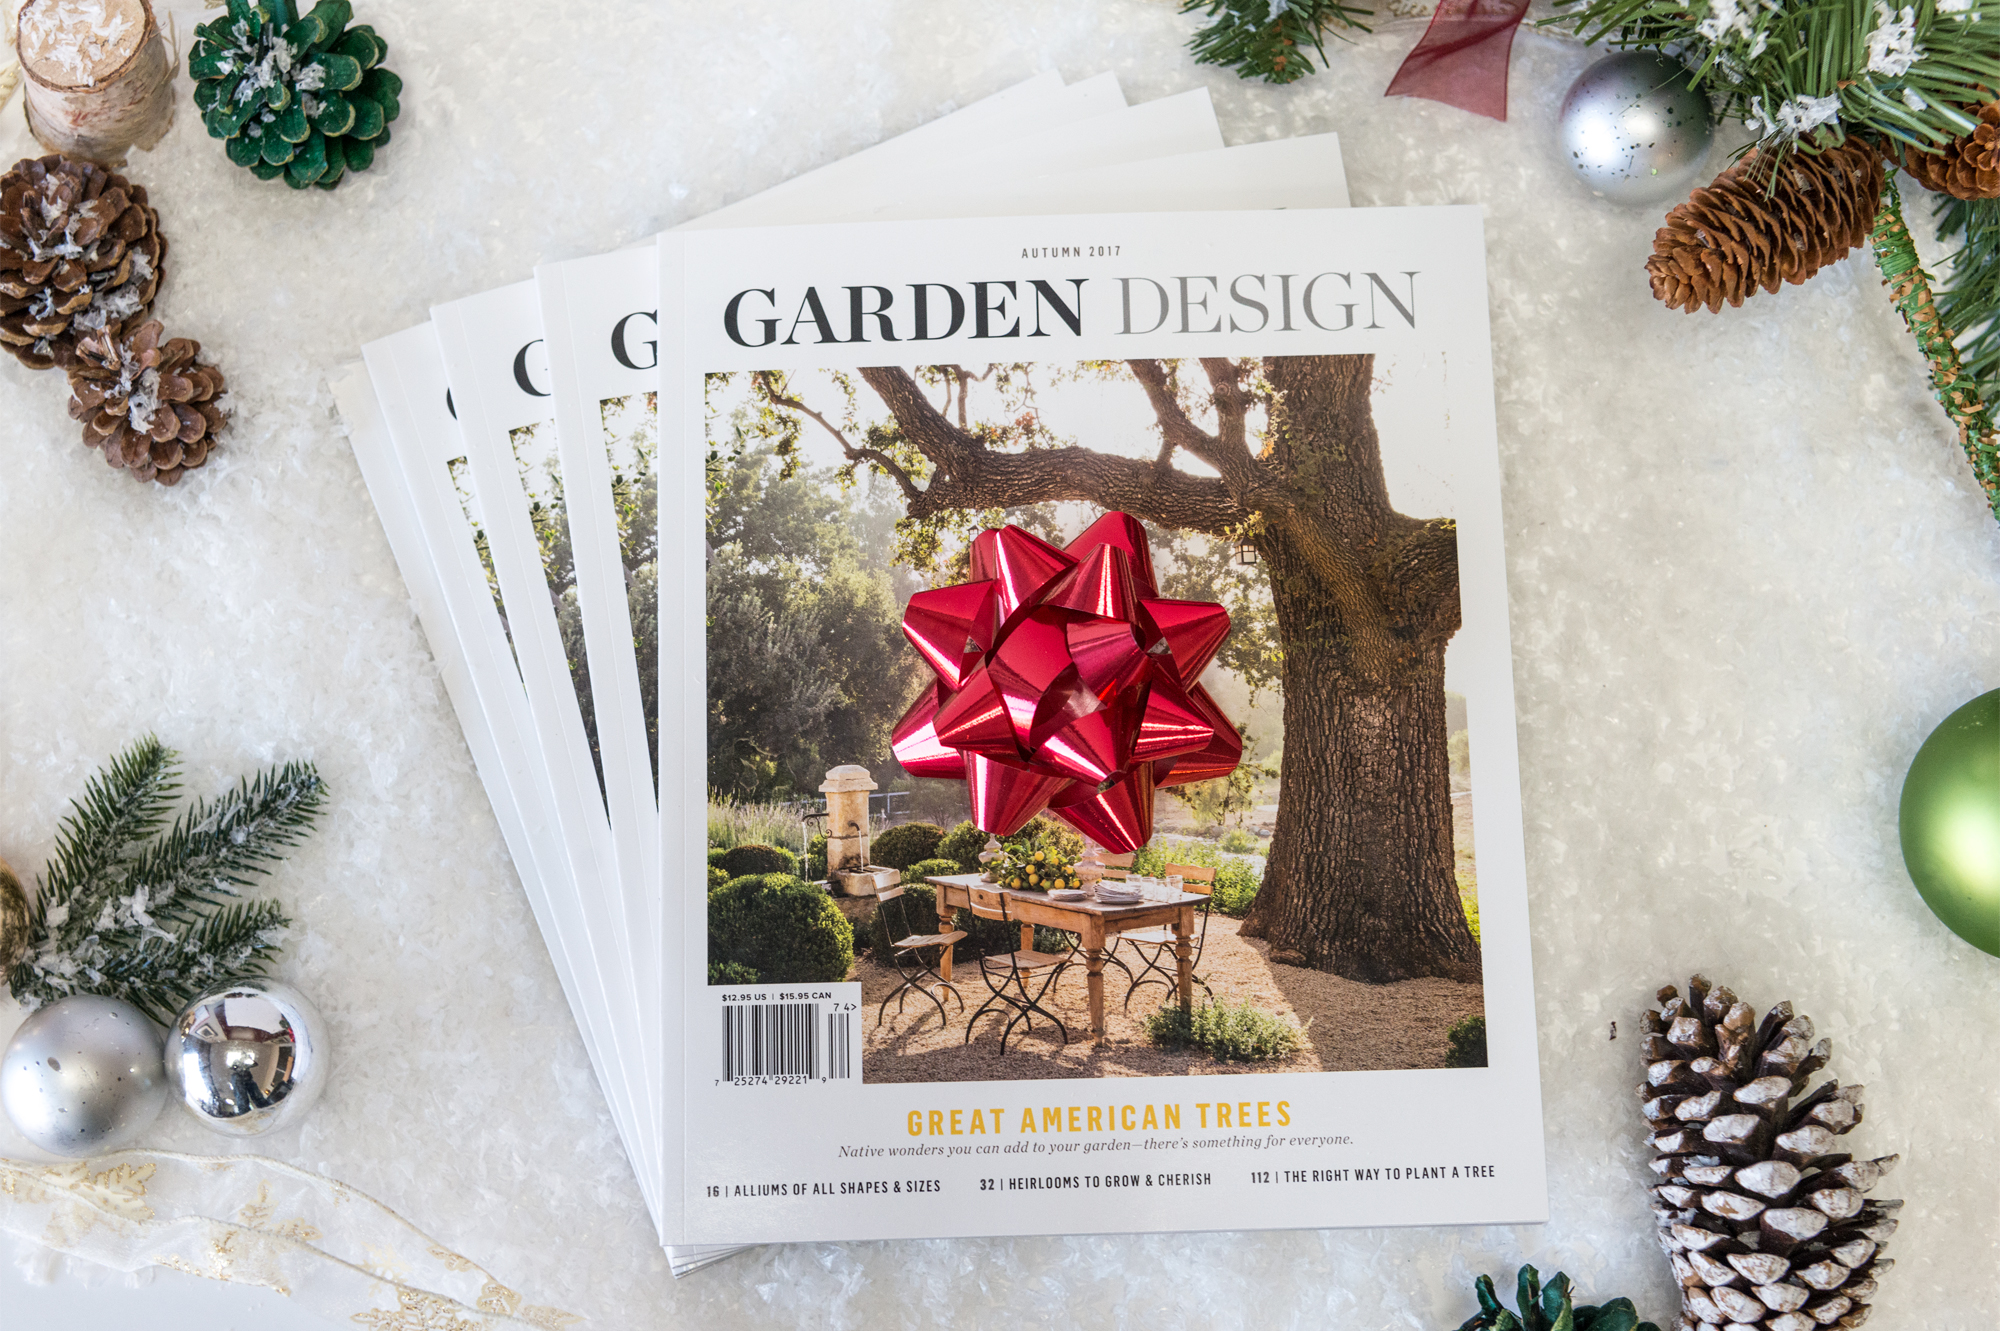 Readers of Cold Climate Gardening get five issues for the price of four!